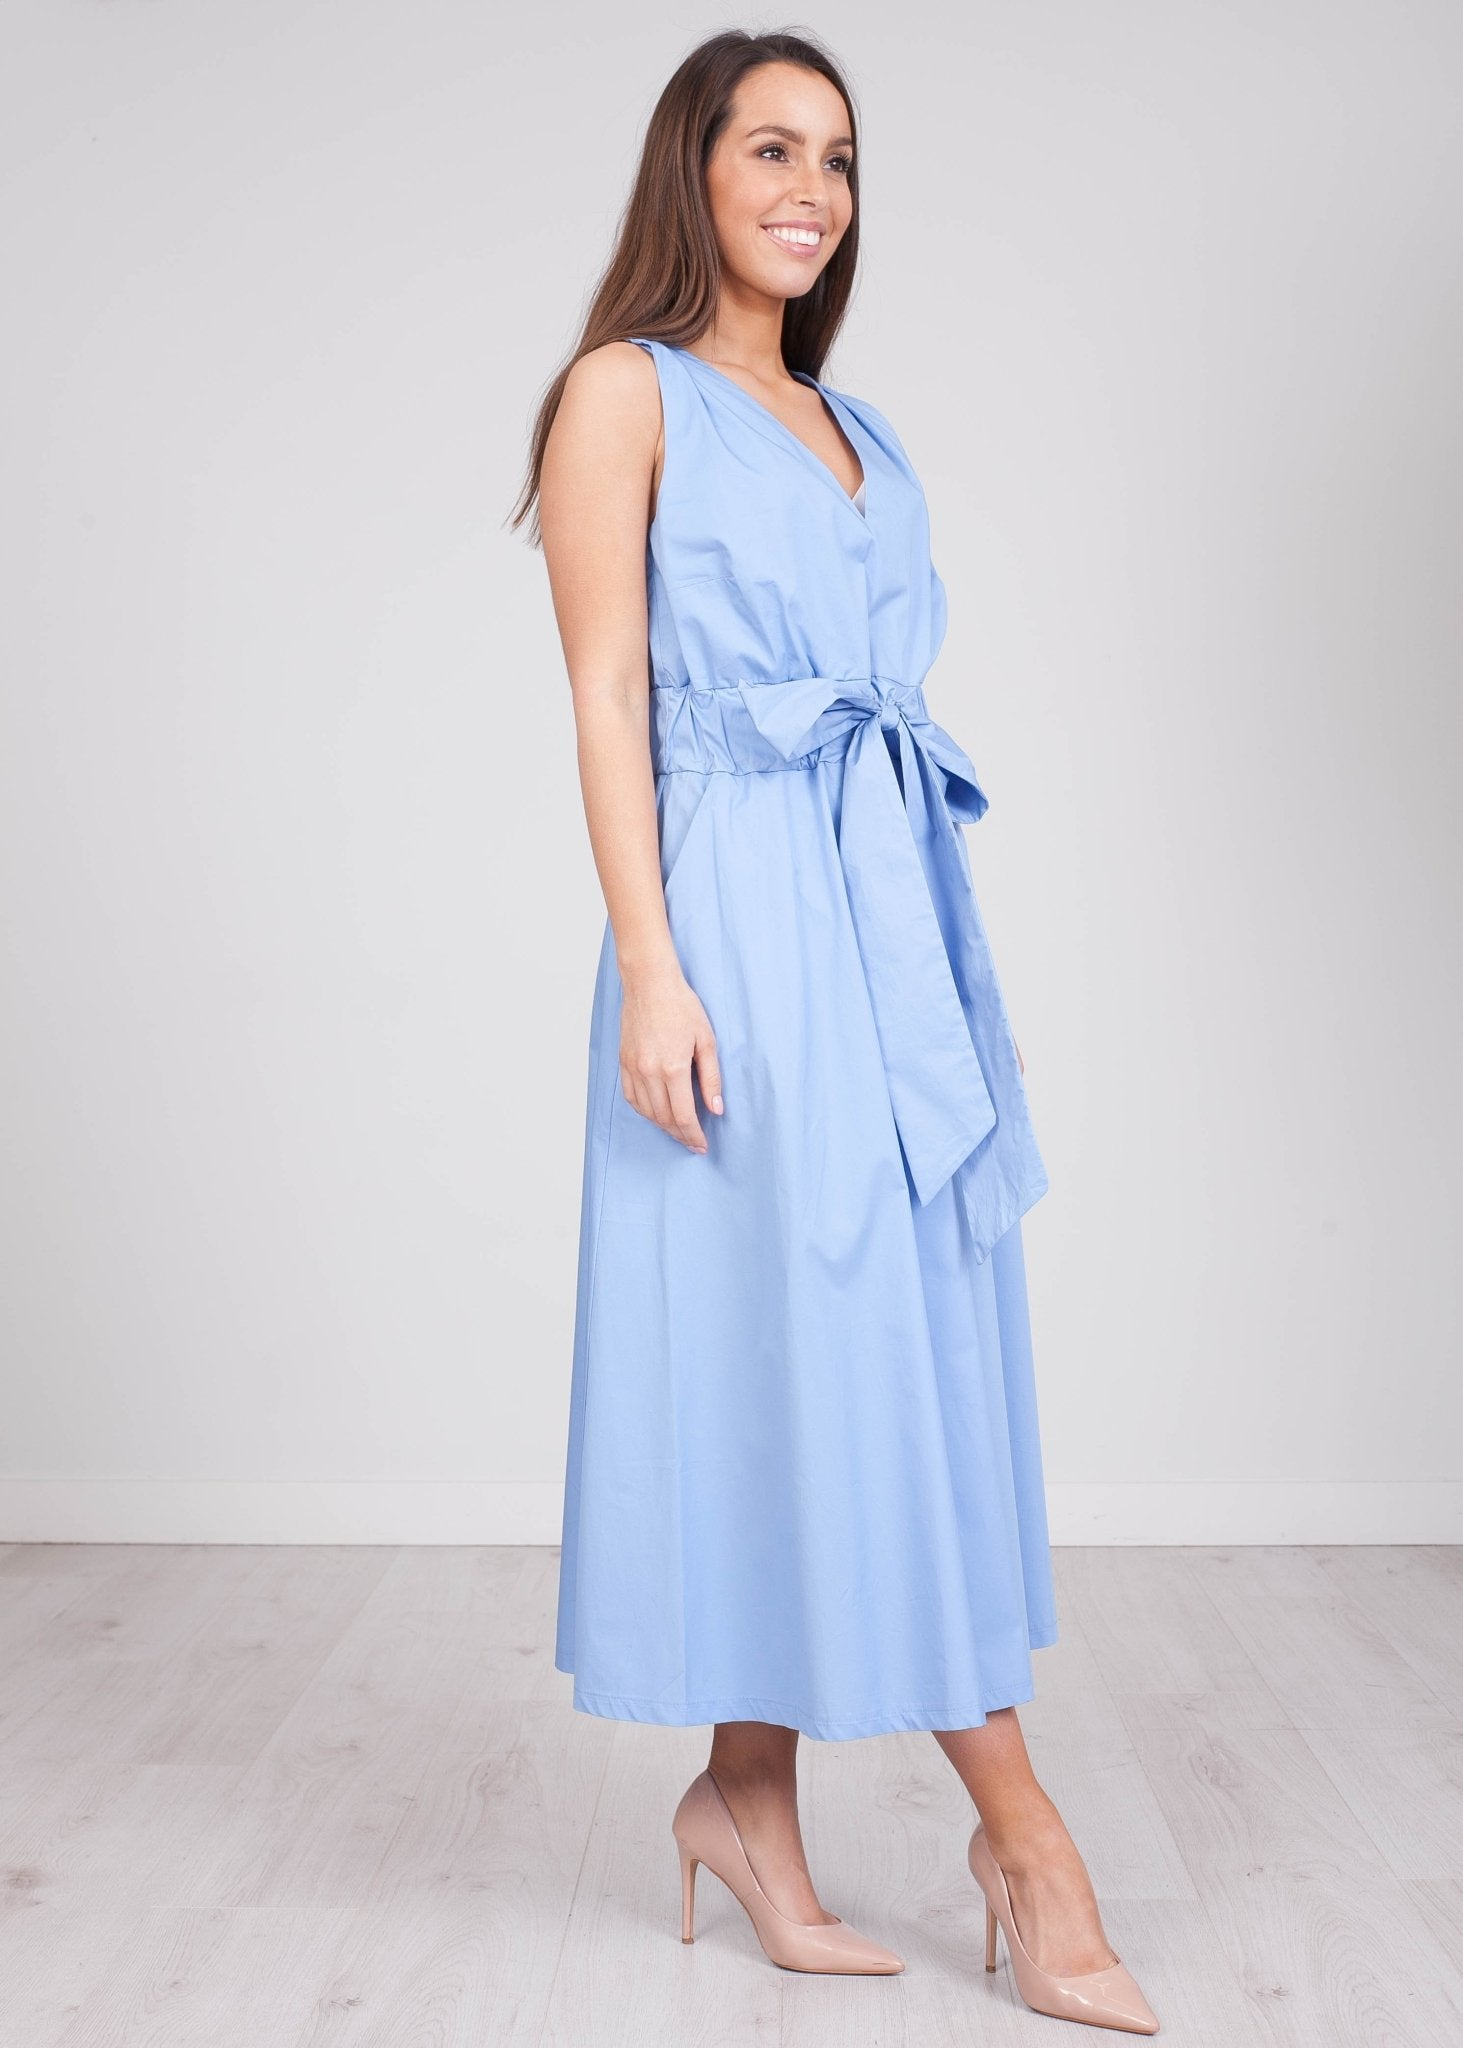 Savannah Blue Dress - The Walk in Wardrobe